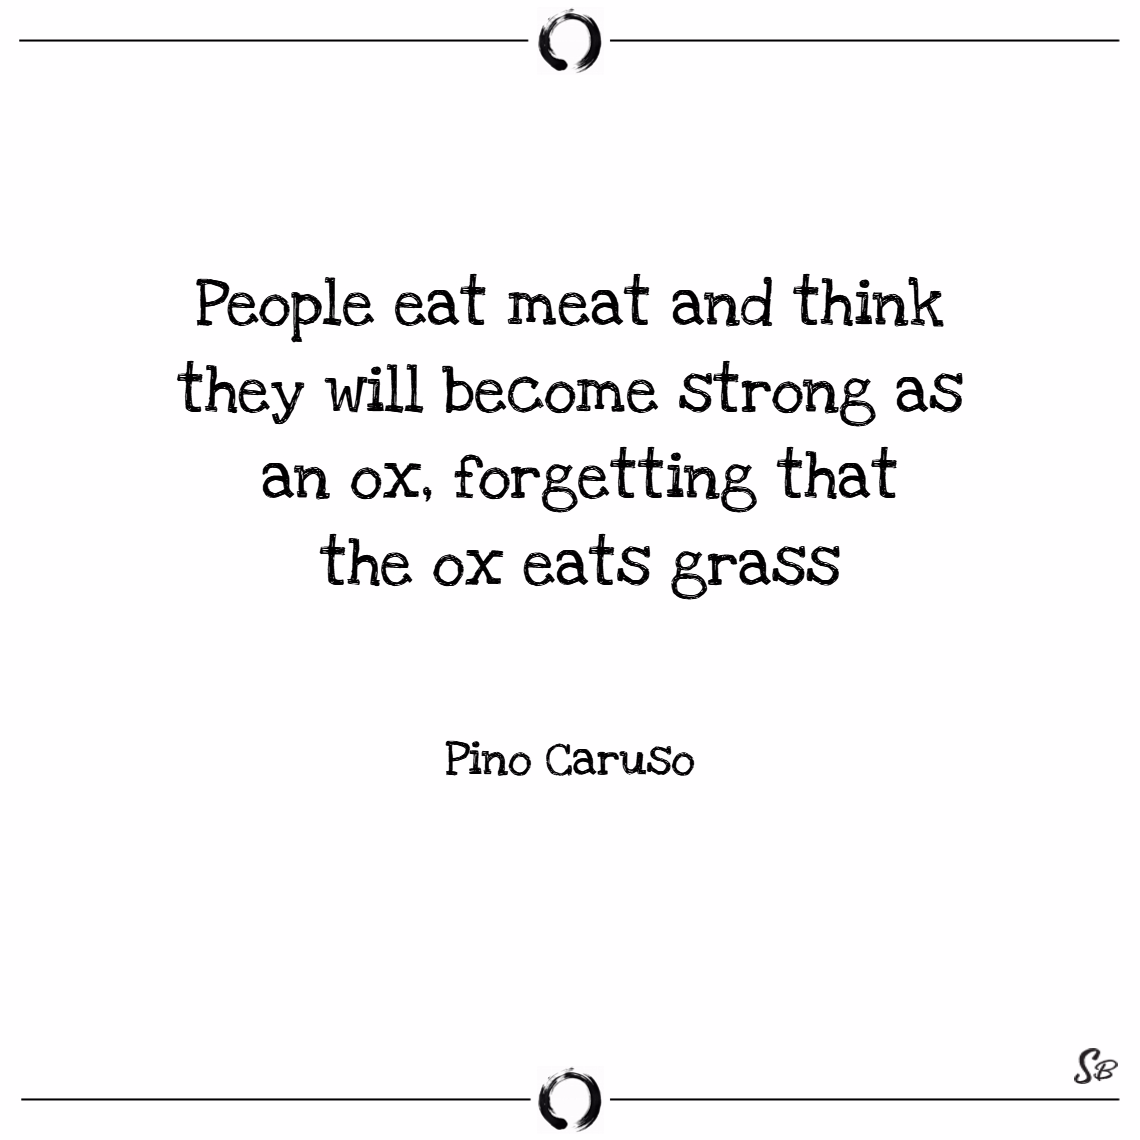 People eat meat and think they will become strong as an ox, forgetting that the ox eats grass. – pino caruso